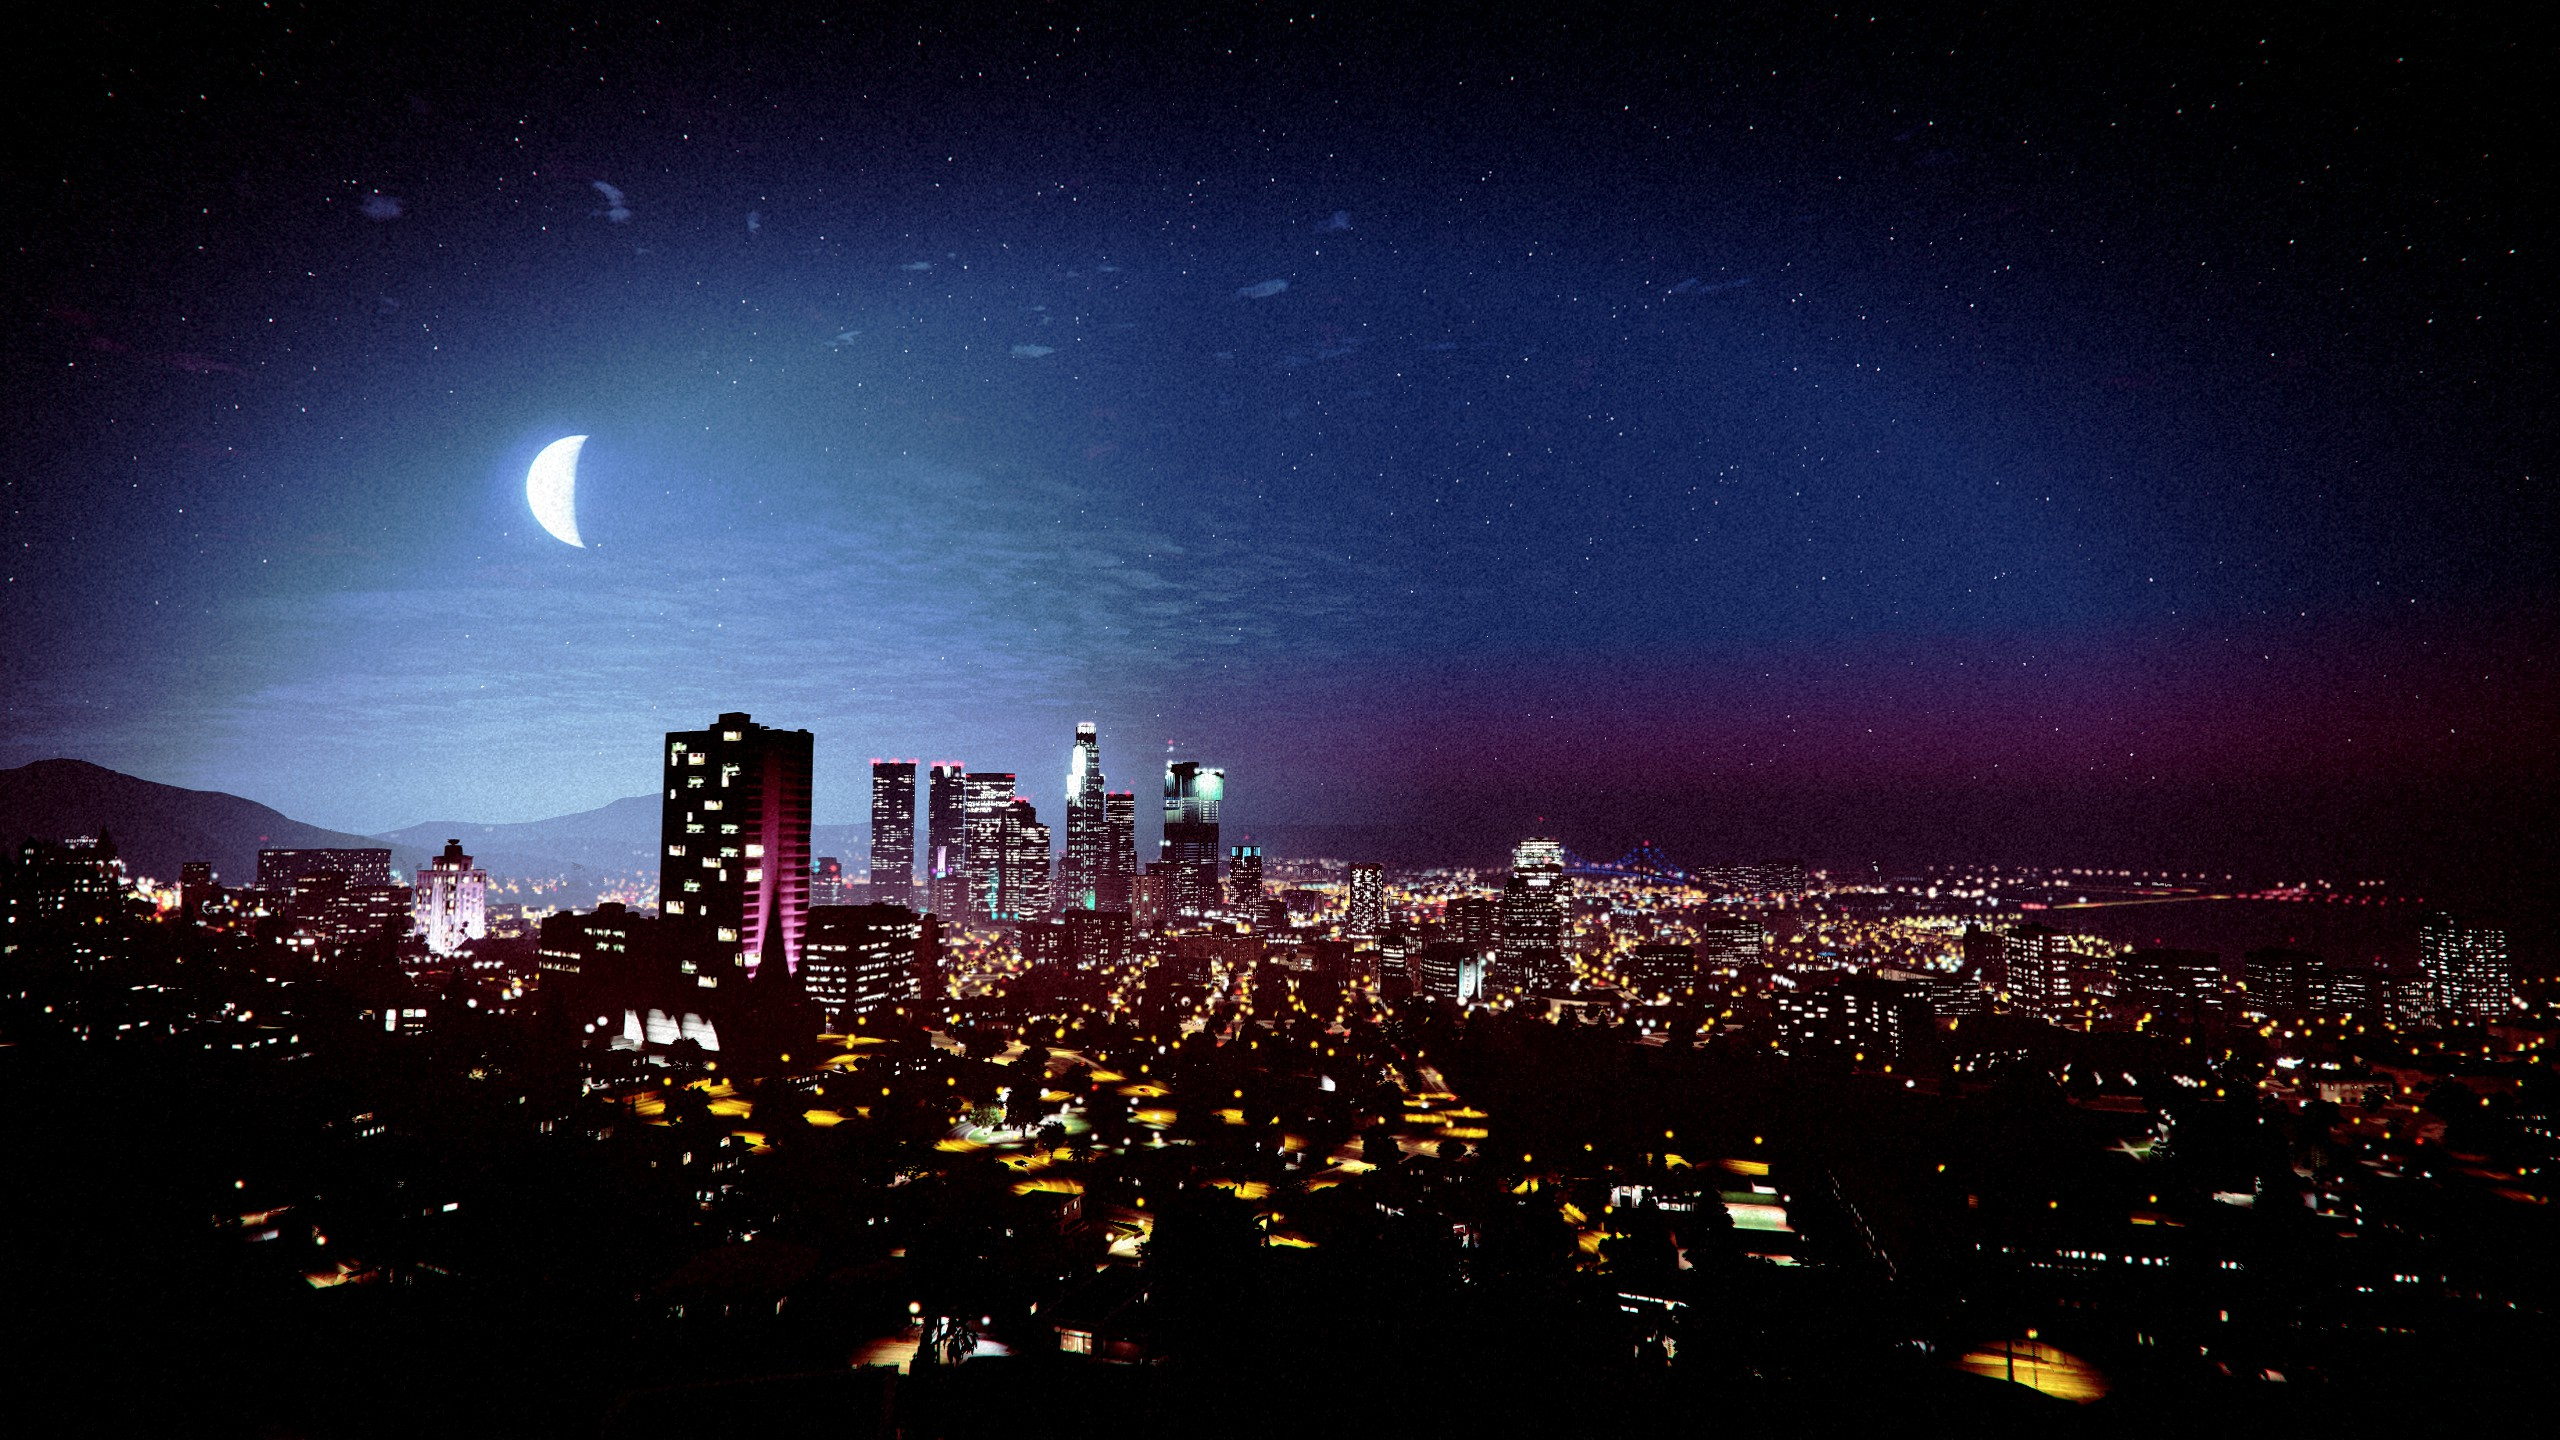 4k Hdr Wallpaper Iphone X Grand Theft Auto V Hd Wallpaper Background Image